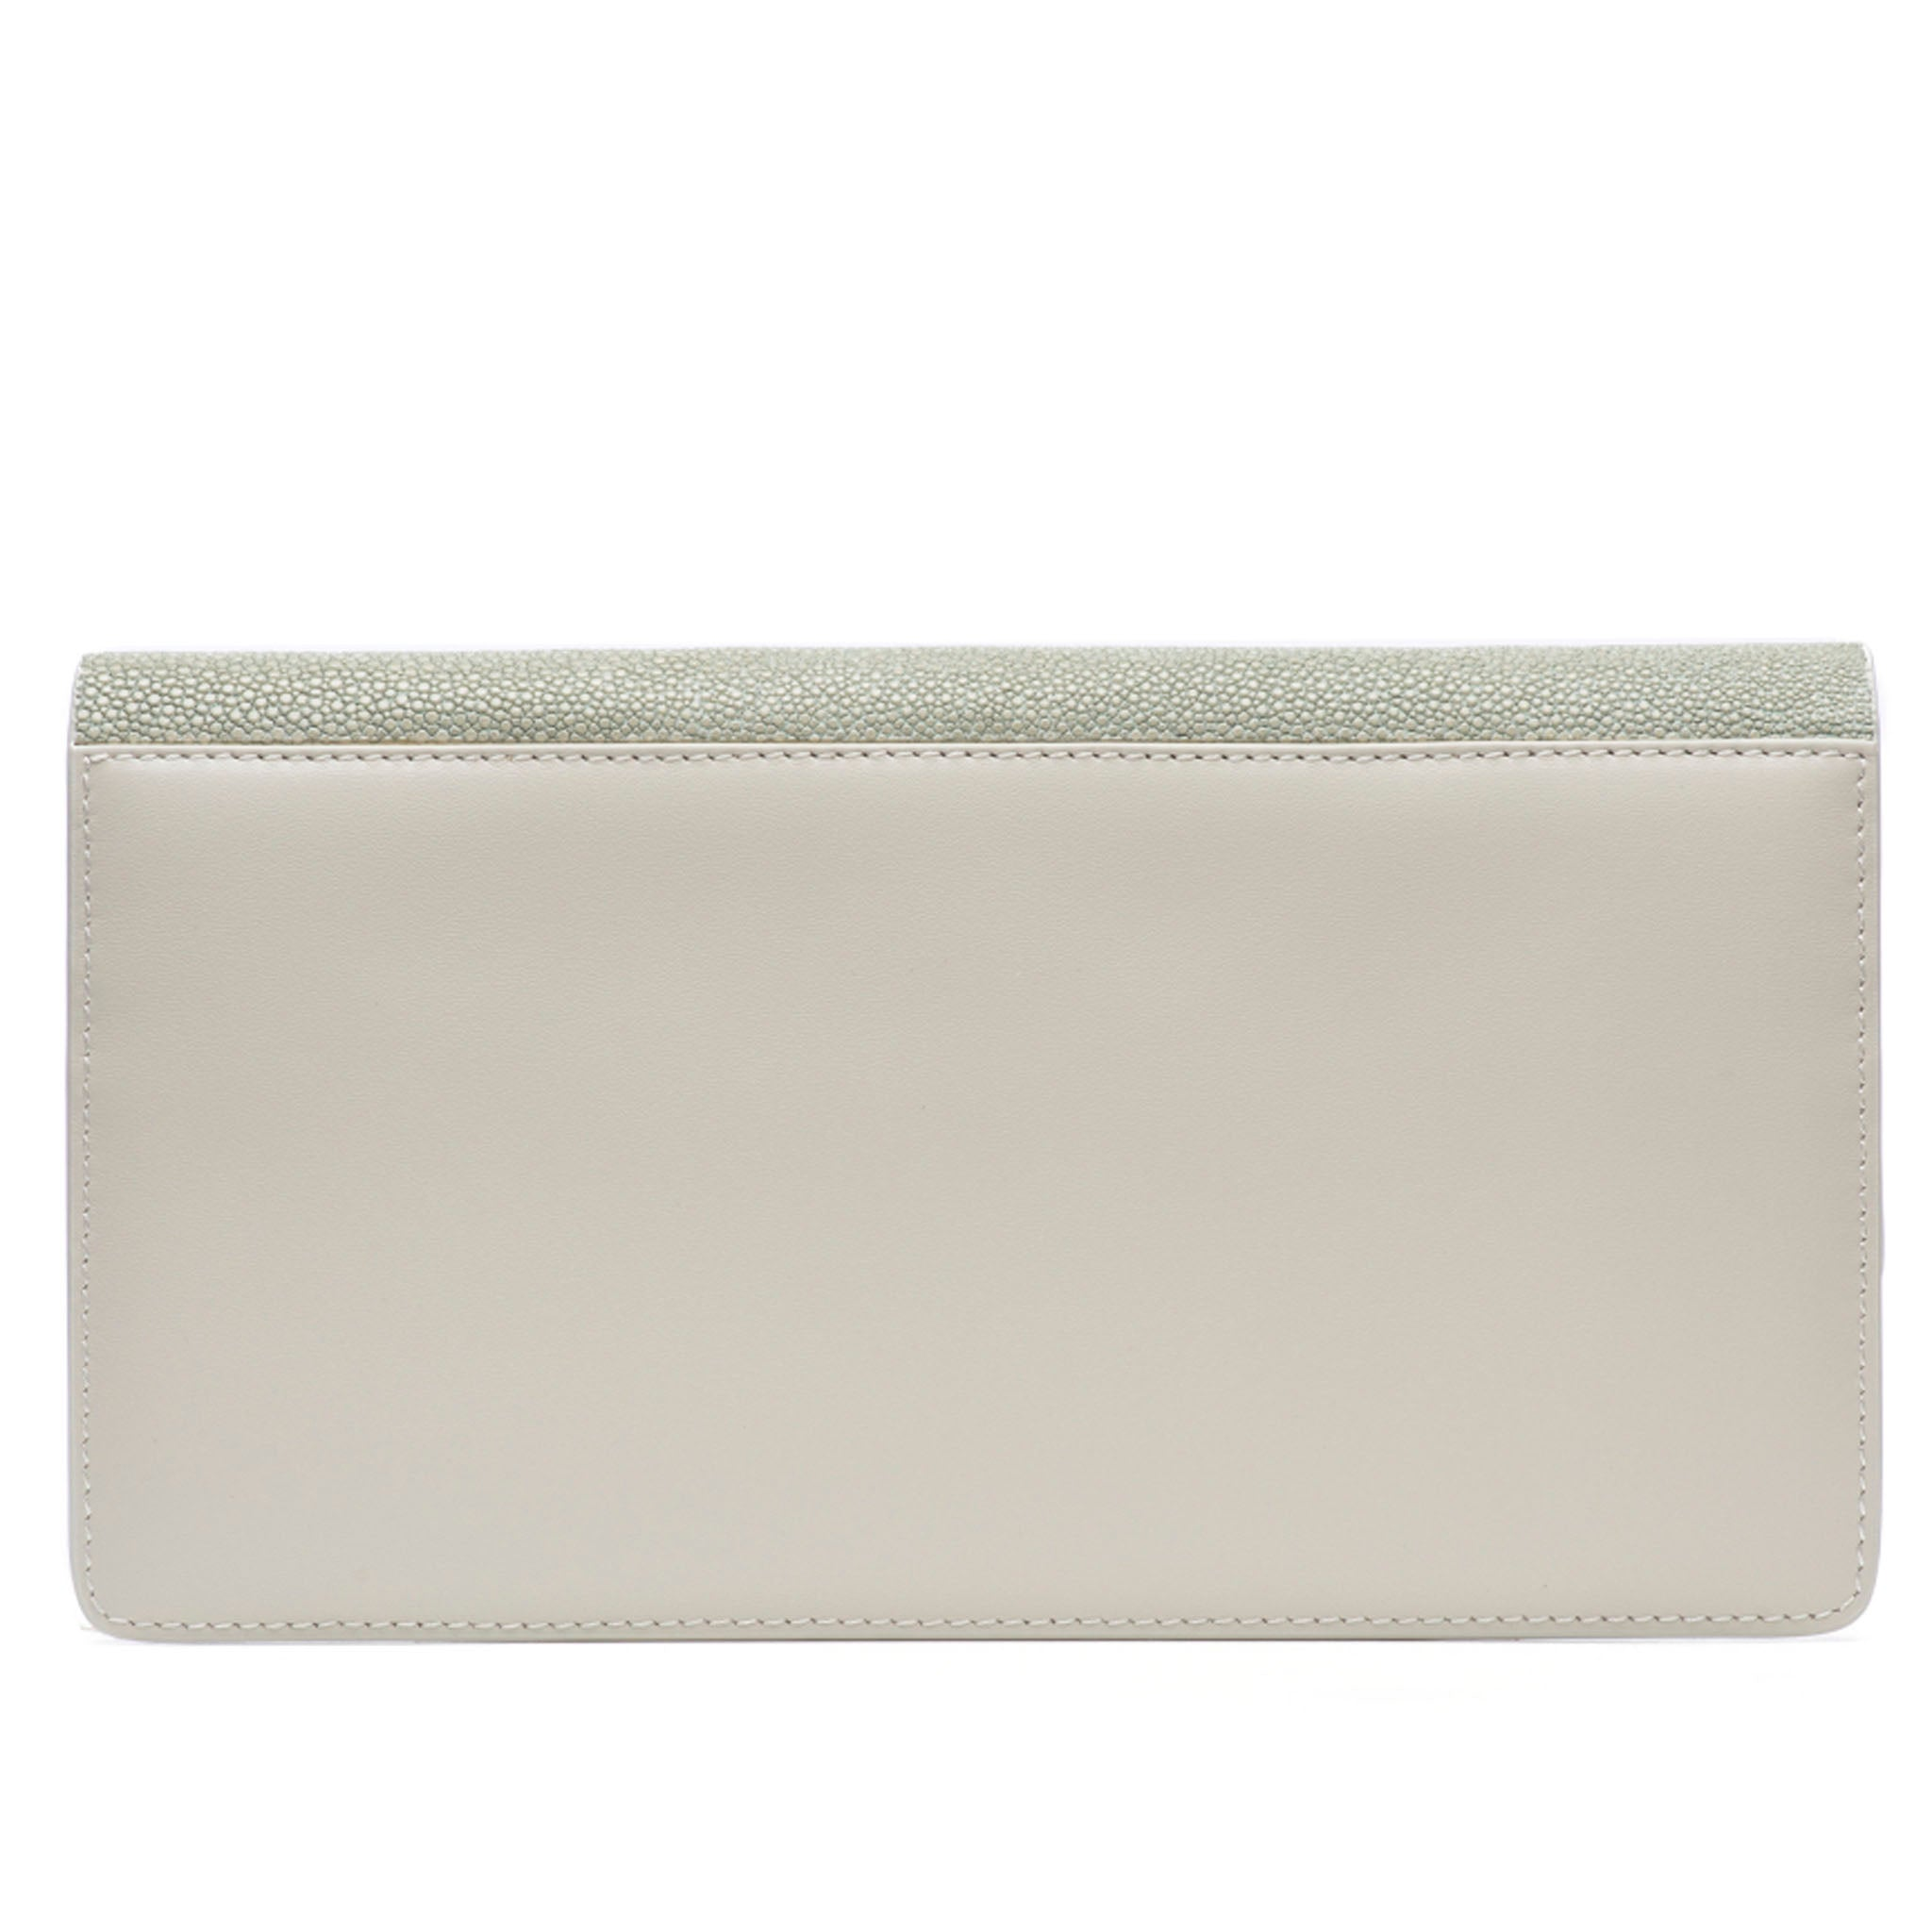 Cement Shagreen Fold Front Wallet Clutch  Back View Bea II -Vivo Direct